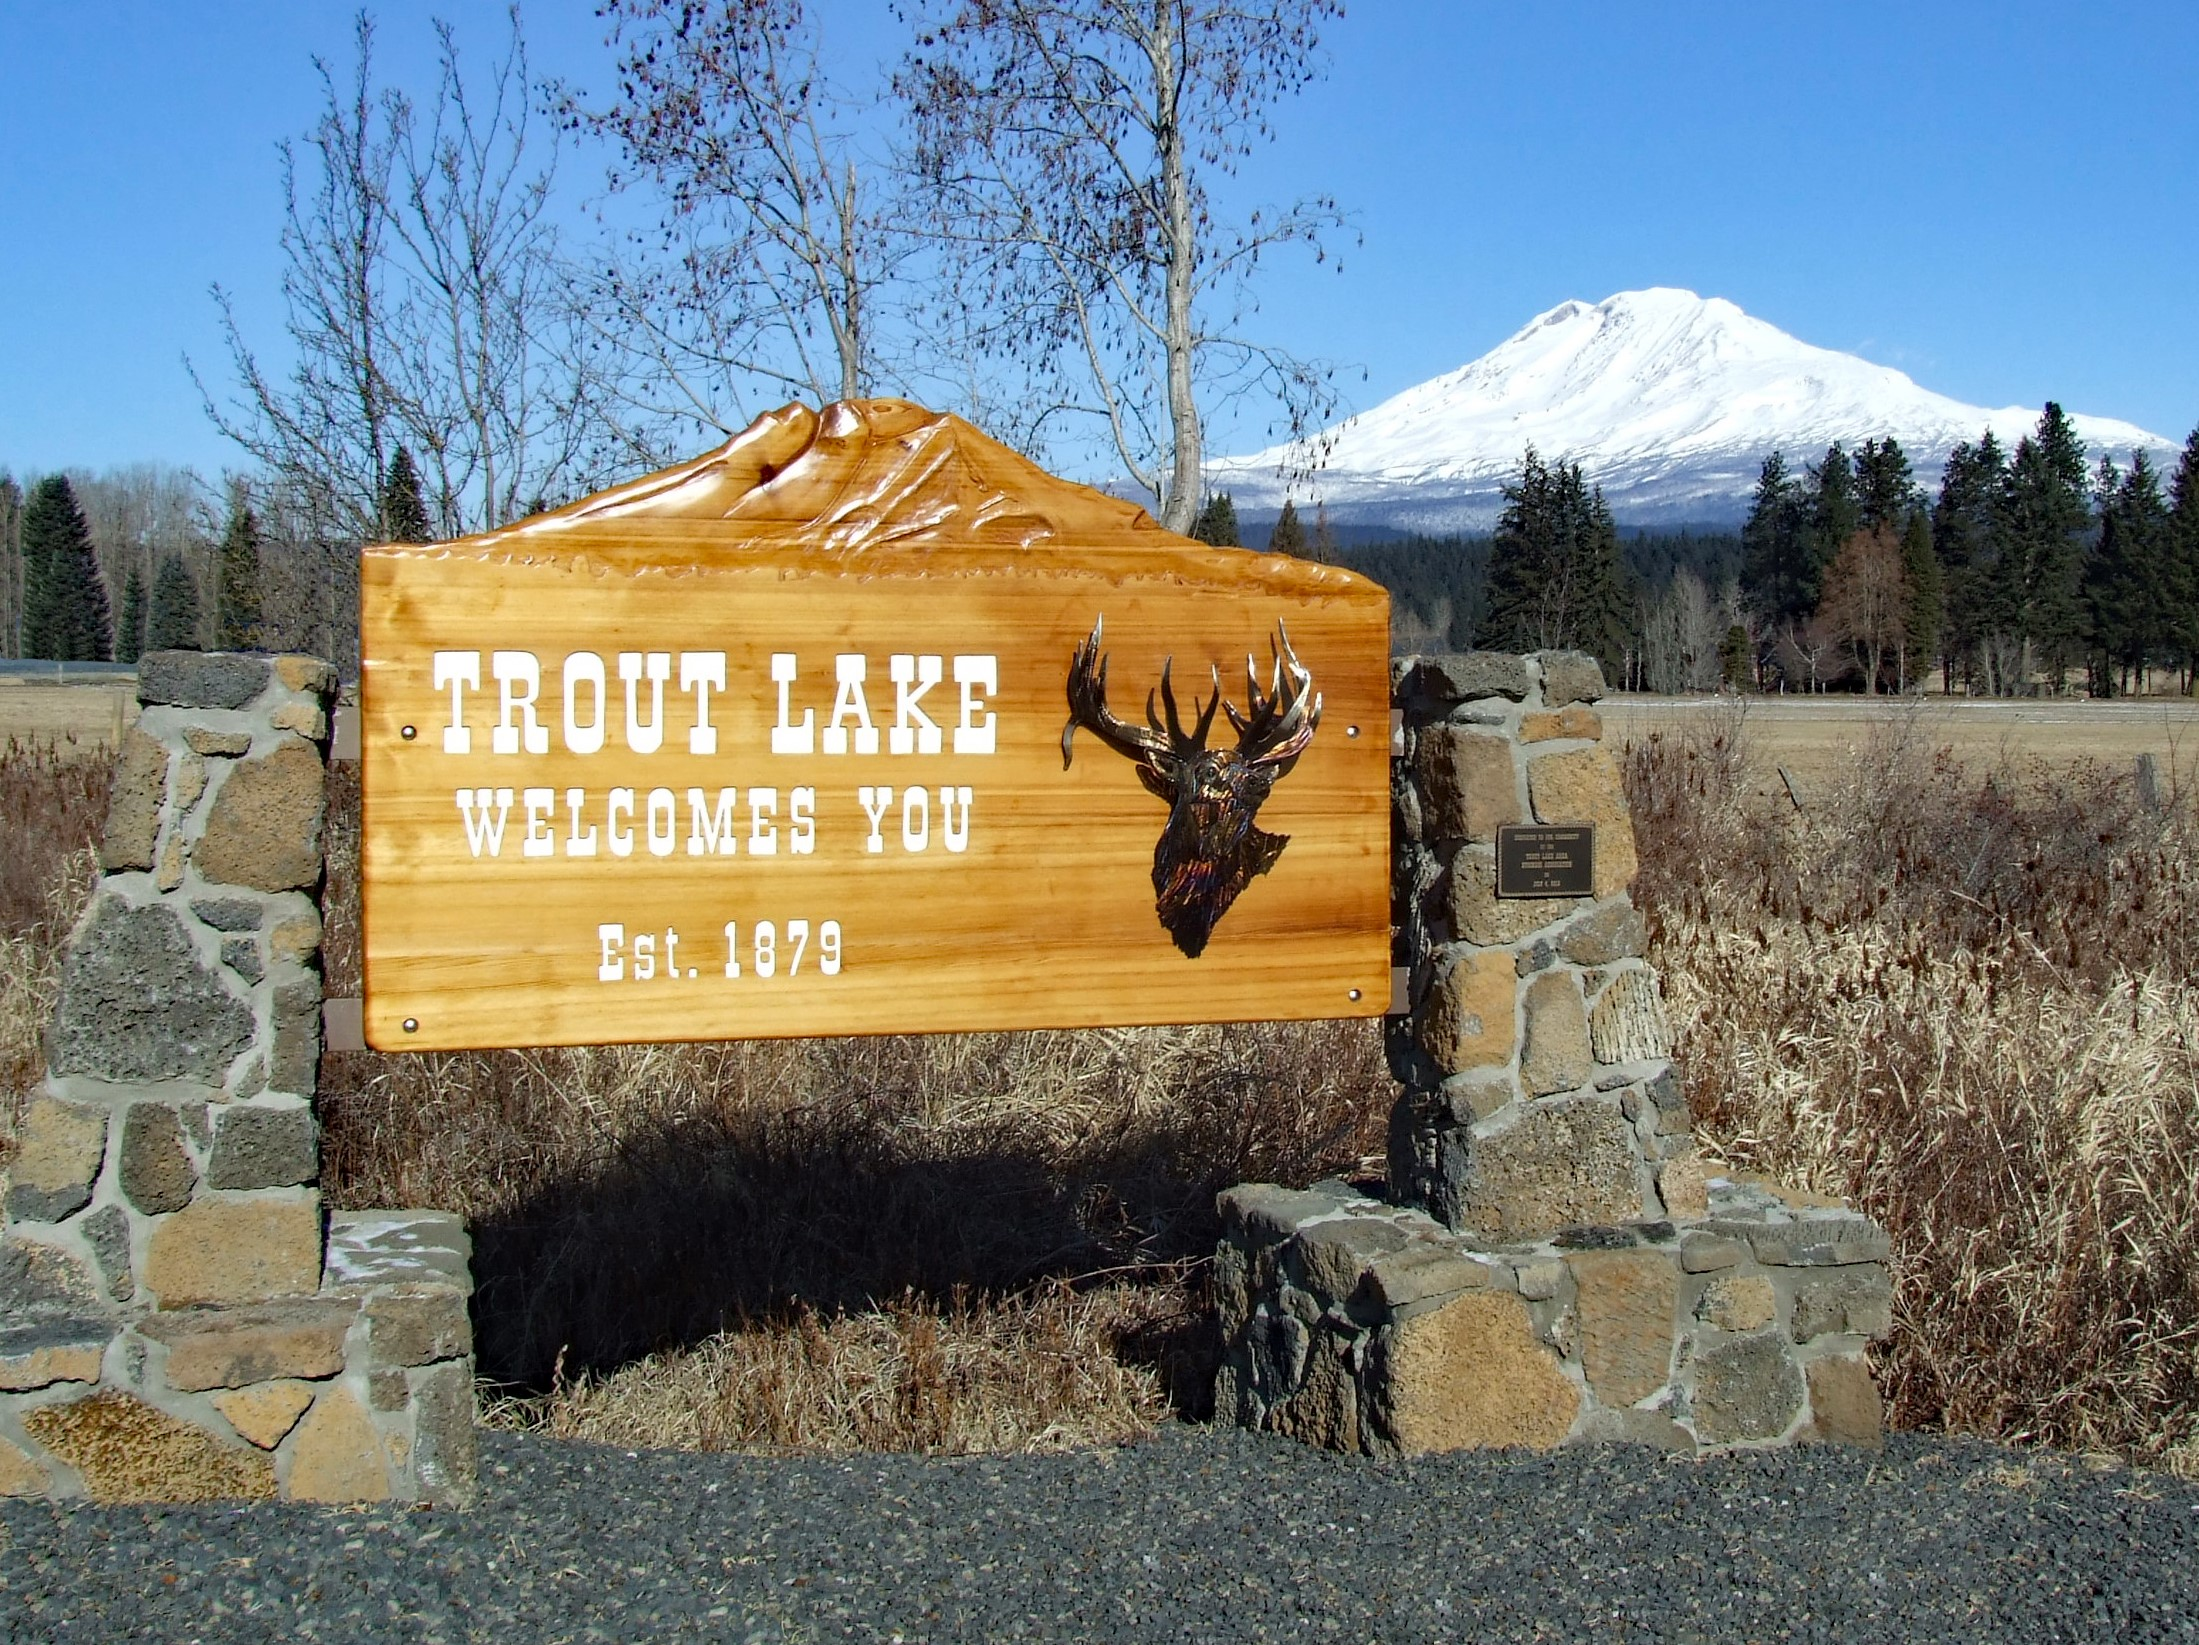 Welcome to Trout Lake sign